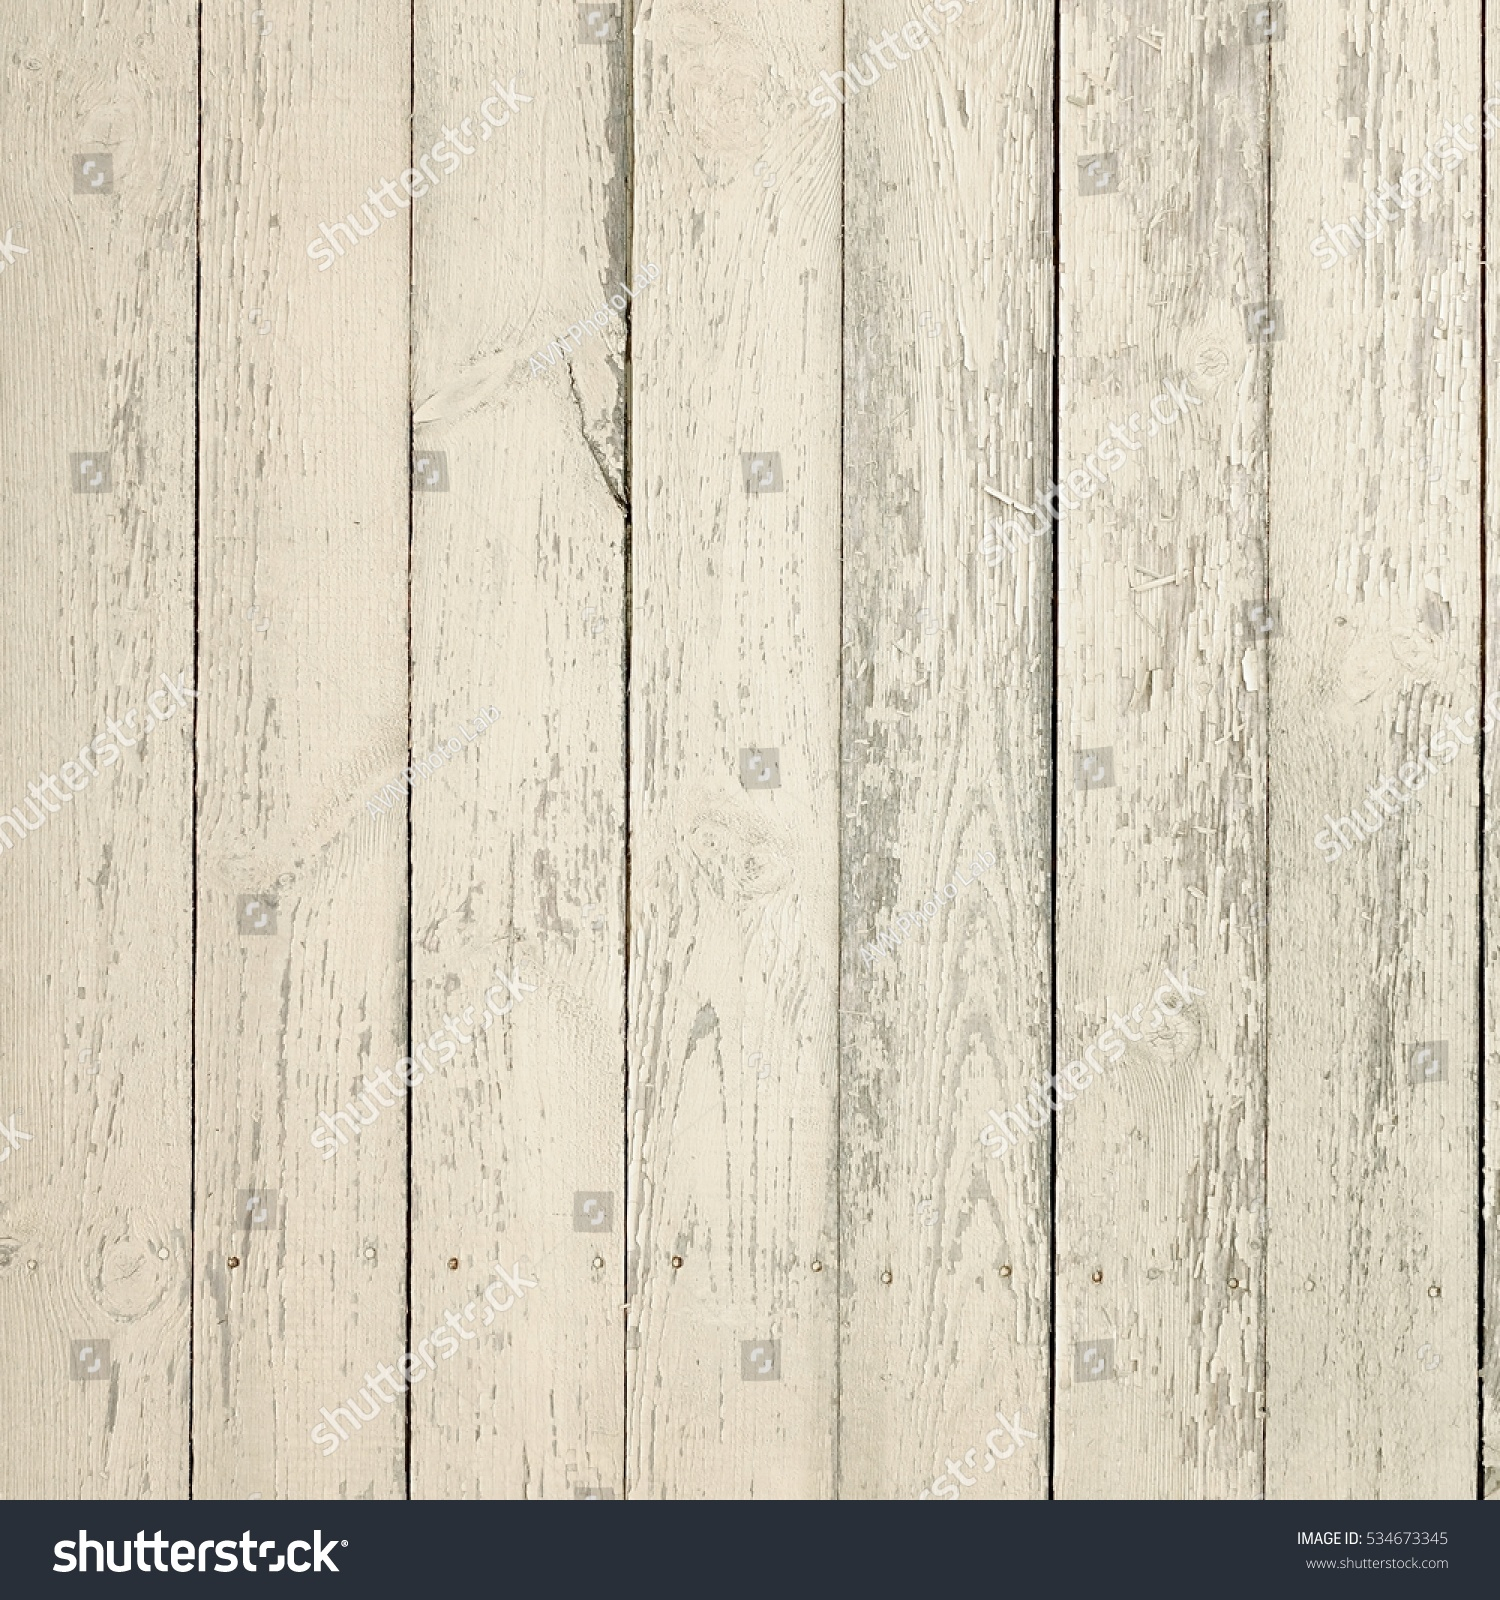 Old Barn Wood Square Background Grey Stock Photo 534673345